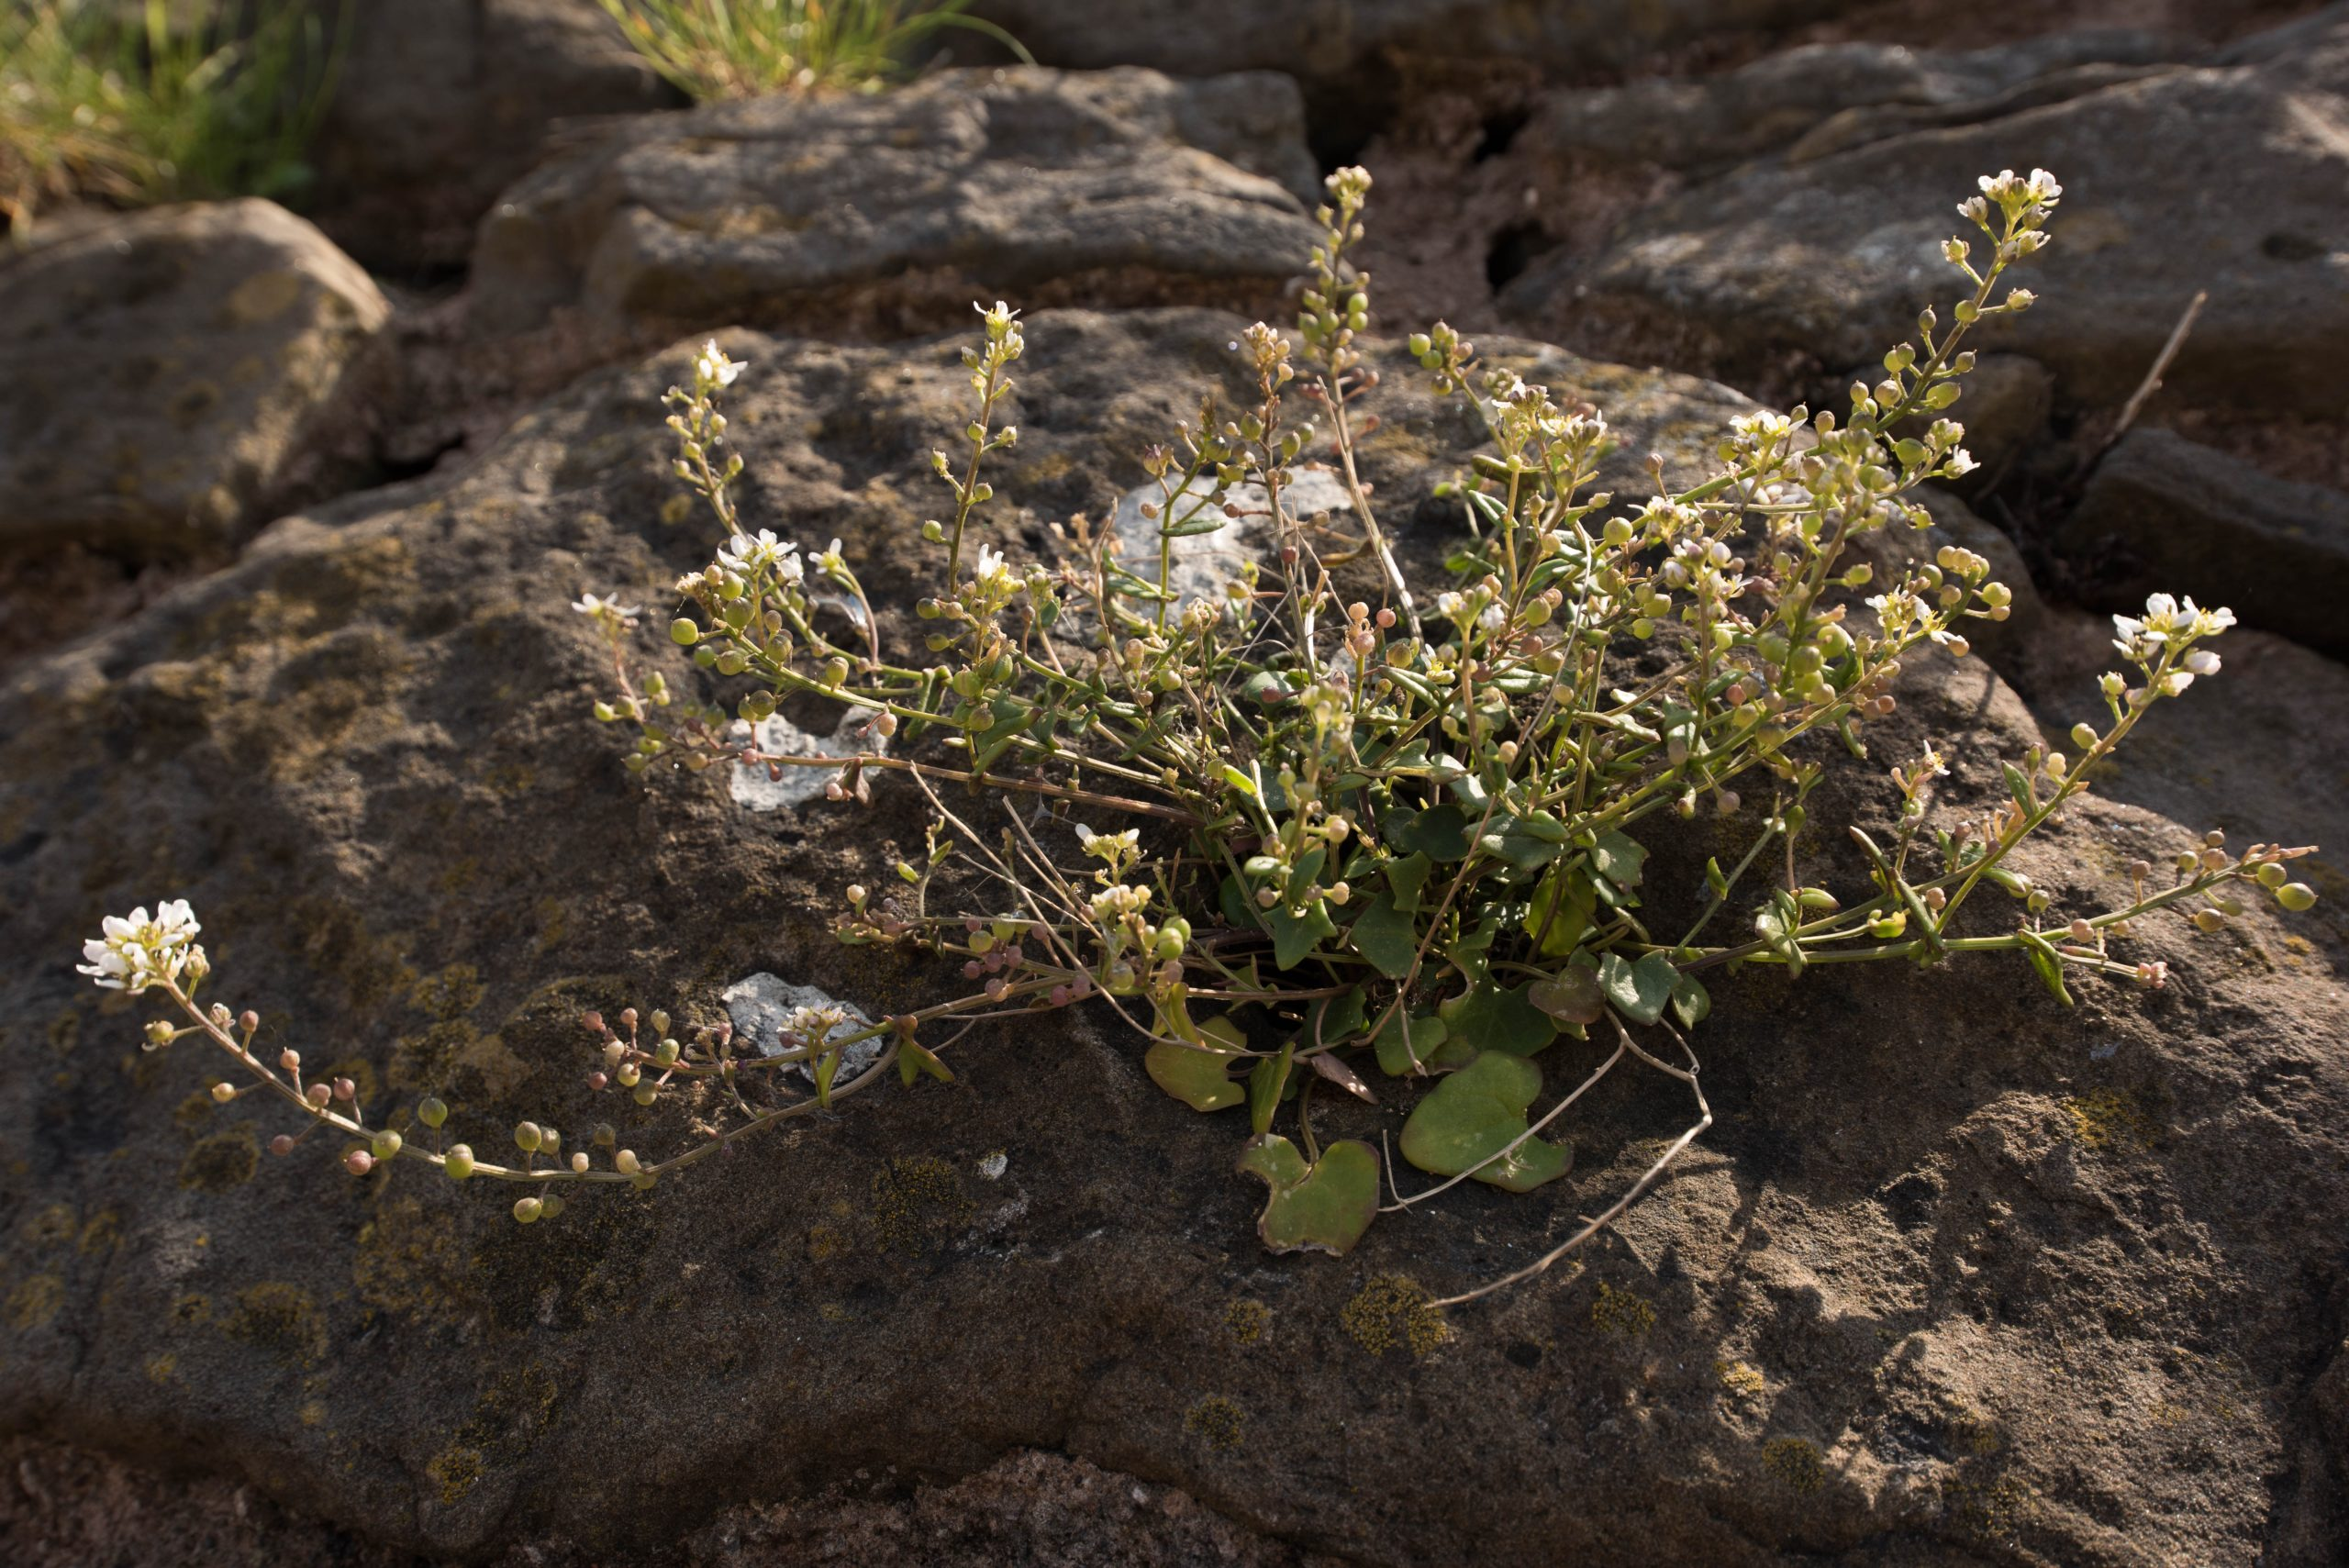 A large rock with a spindly, multi stemmed, white flowering succulent Scurvy grass plant growing on the top.